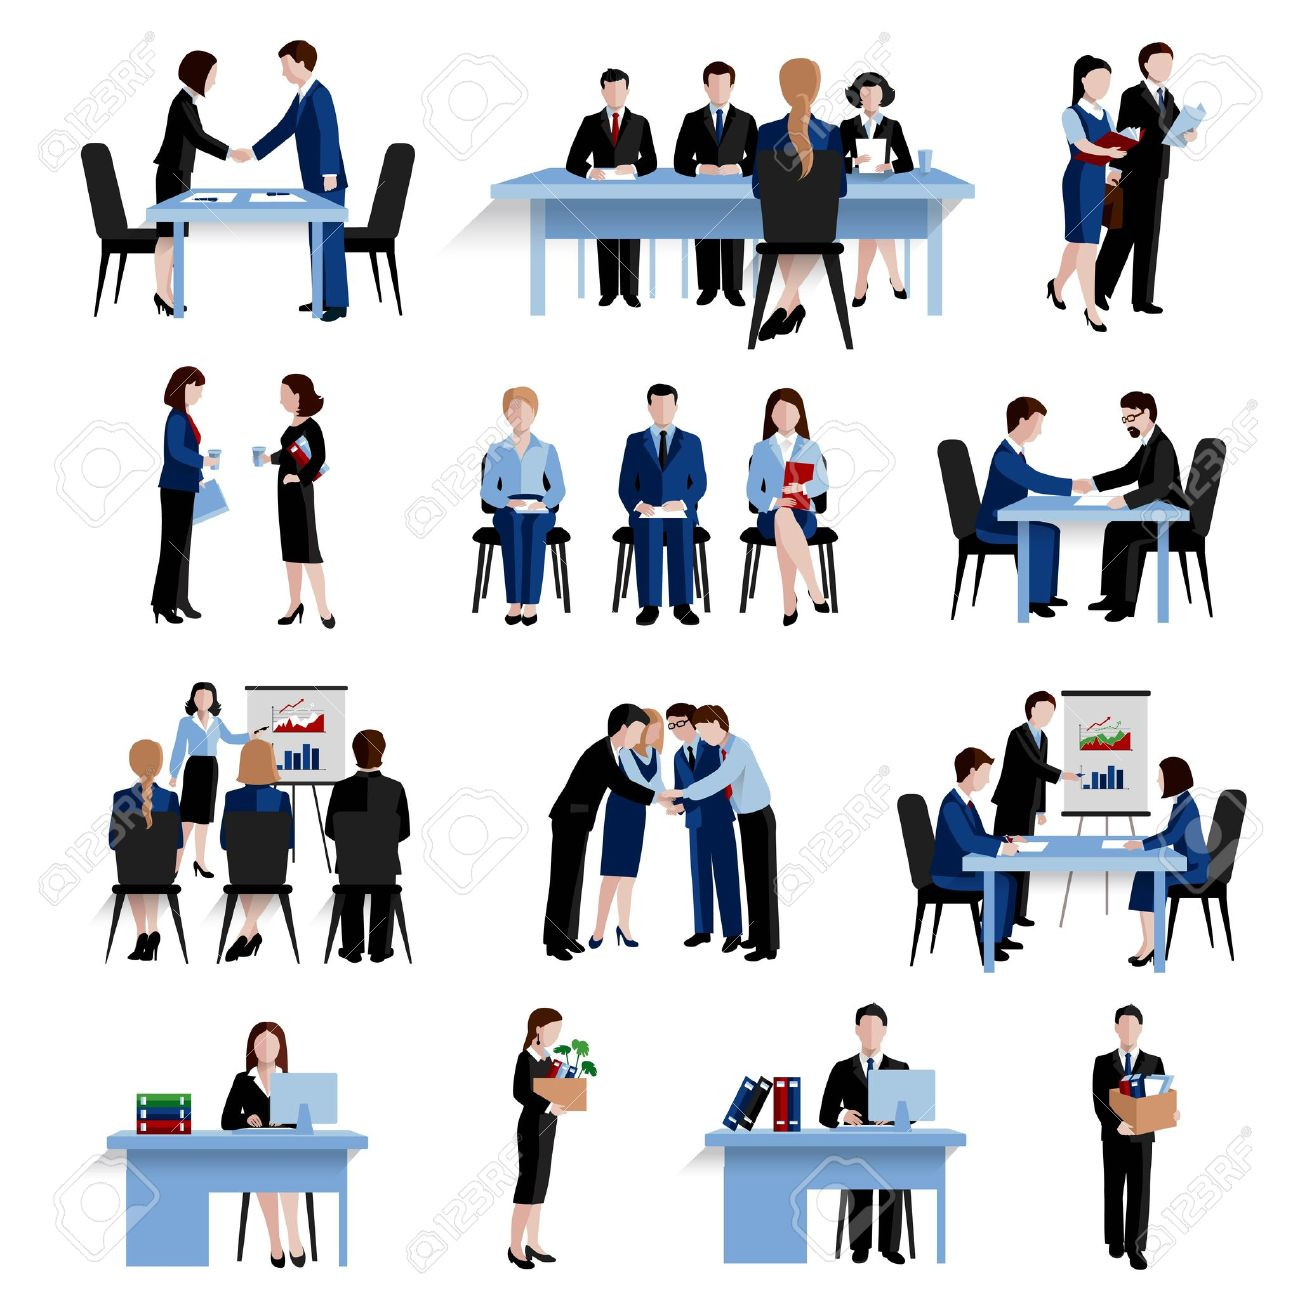 Human resources personnel selection interviewing recruitment and training strategy flat icons composition set abstract isolated vector illustration - 45350228